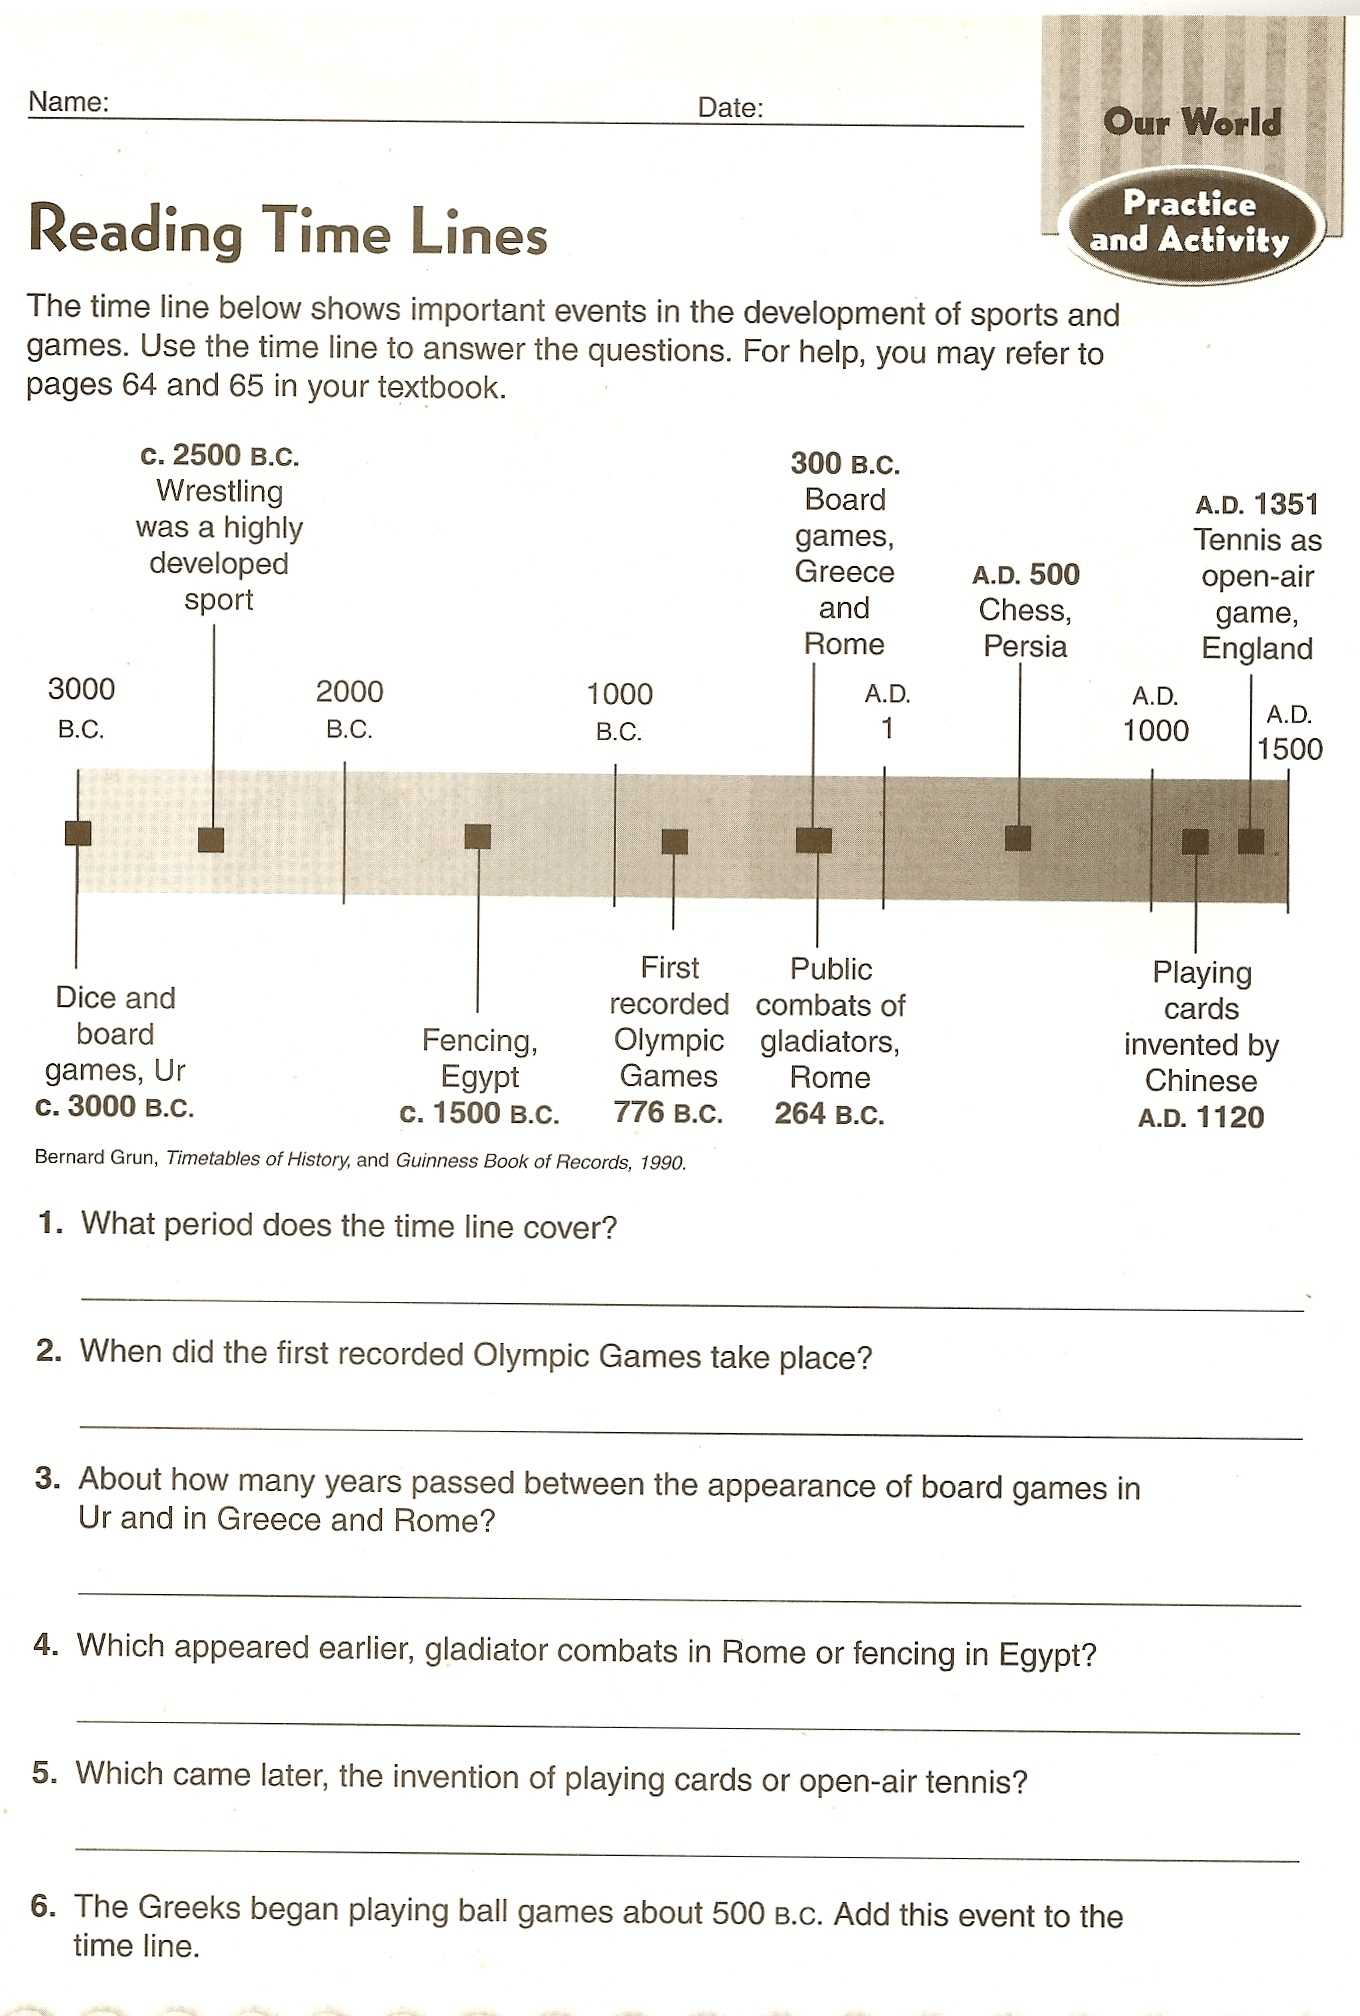 4th Grade Ohio social Studies Worksheets or Grade 4 social Stu S Worksheets Best social Stu S Worksheets